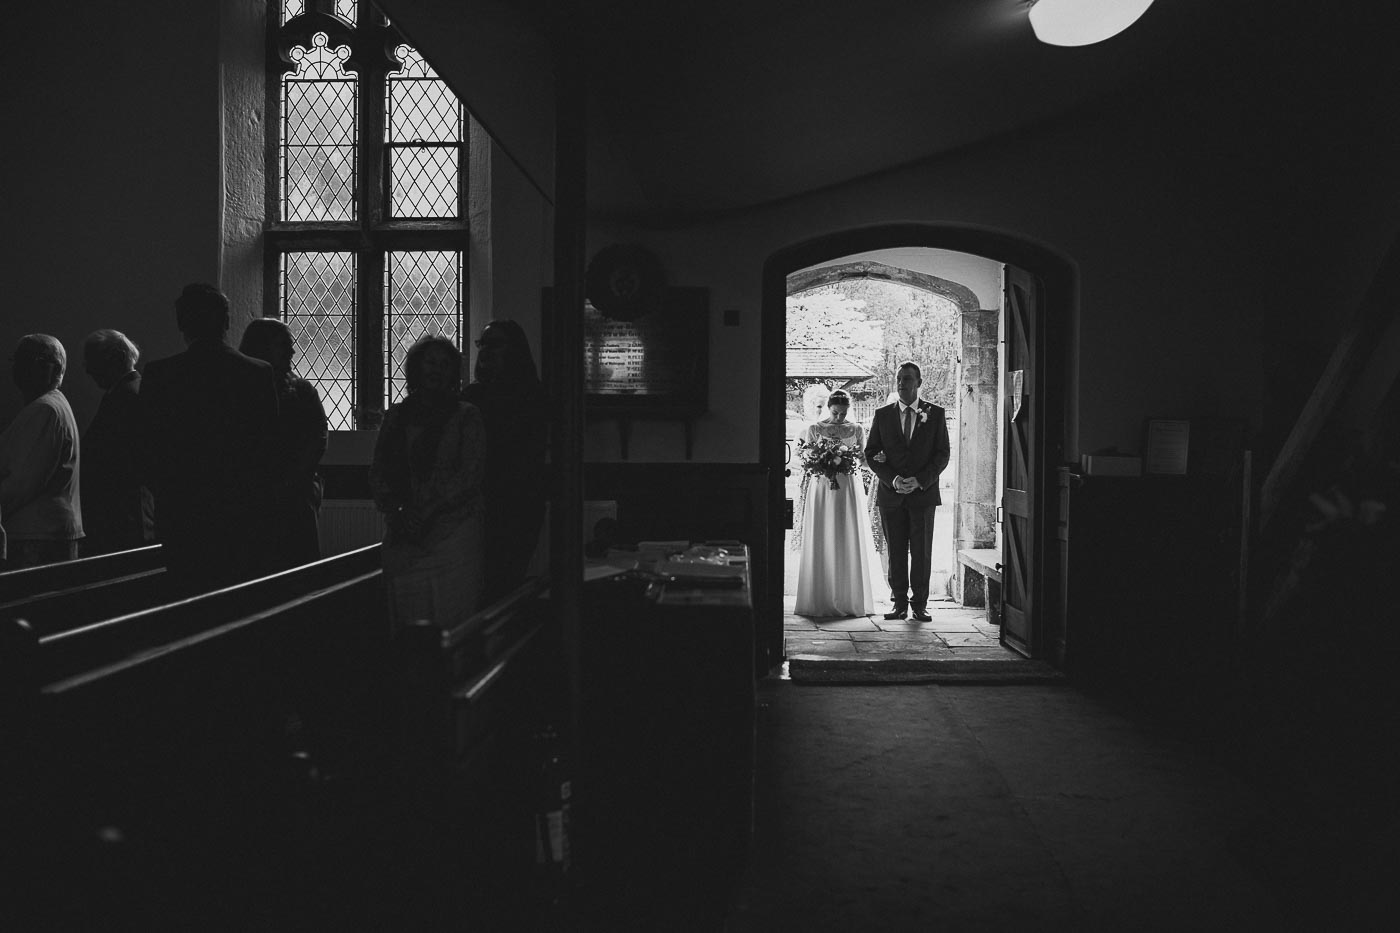 Bride waiting in the church doorway before walking down the aisle, Documentary wedding photographer in Lancashire